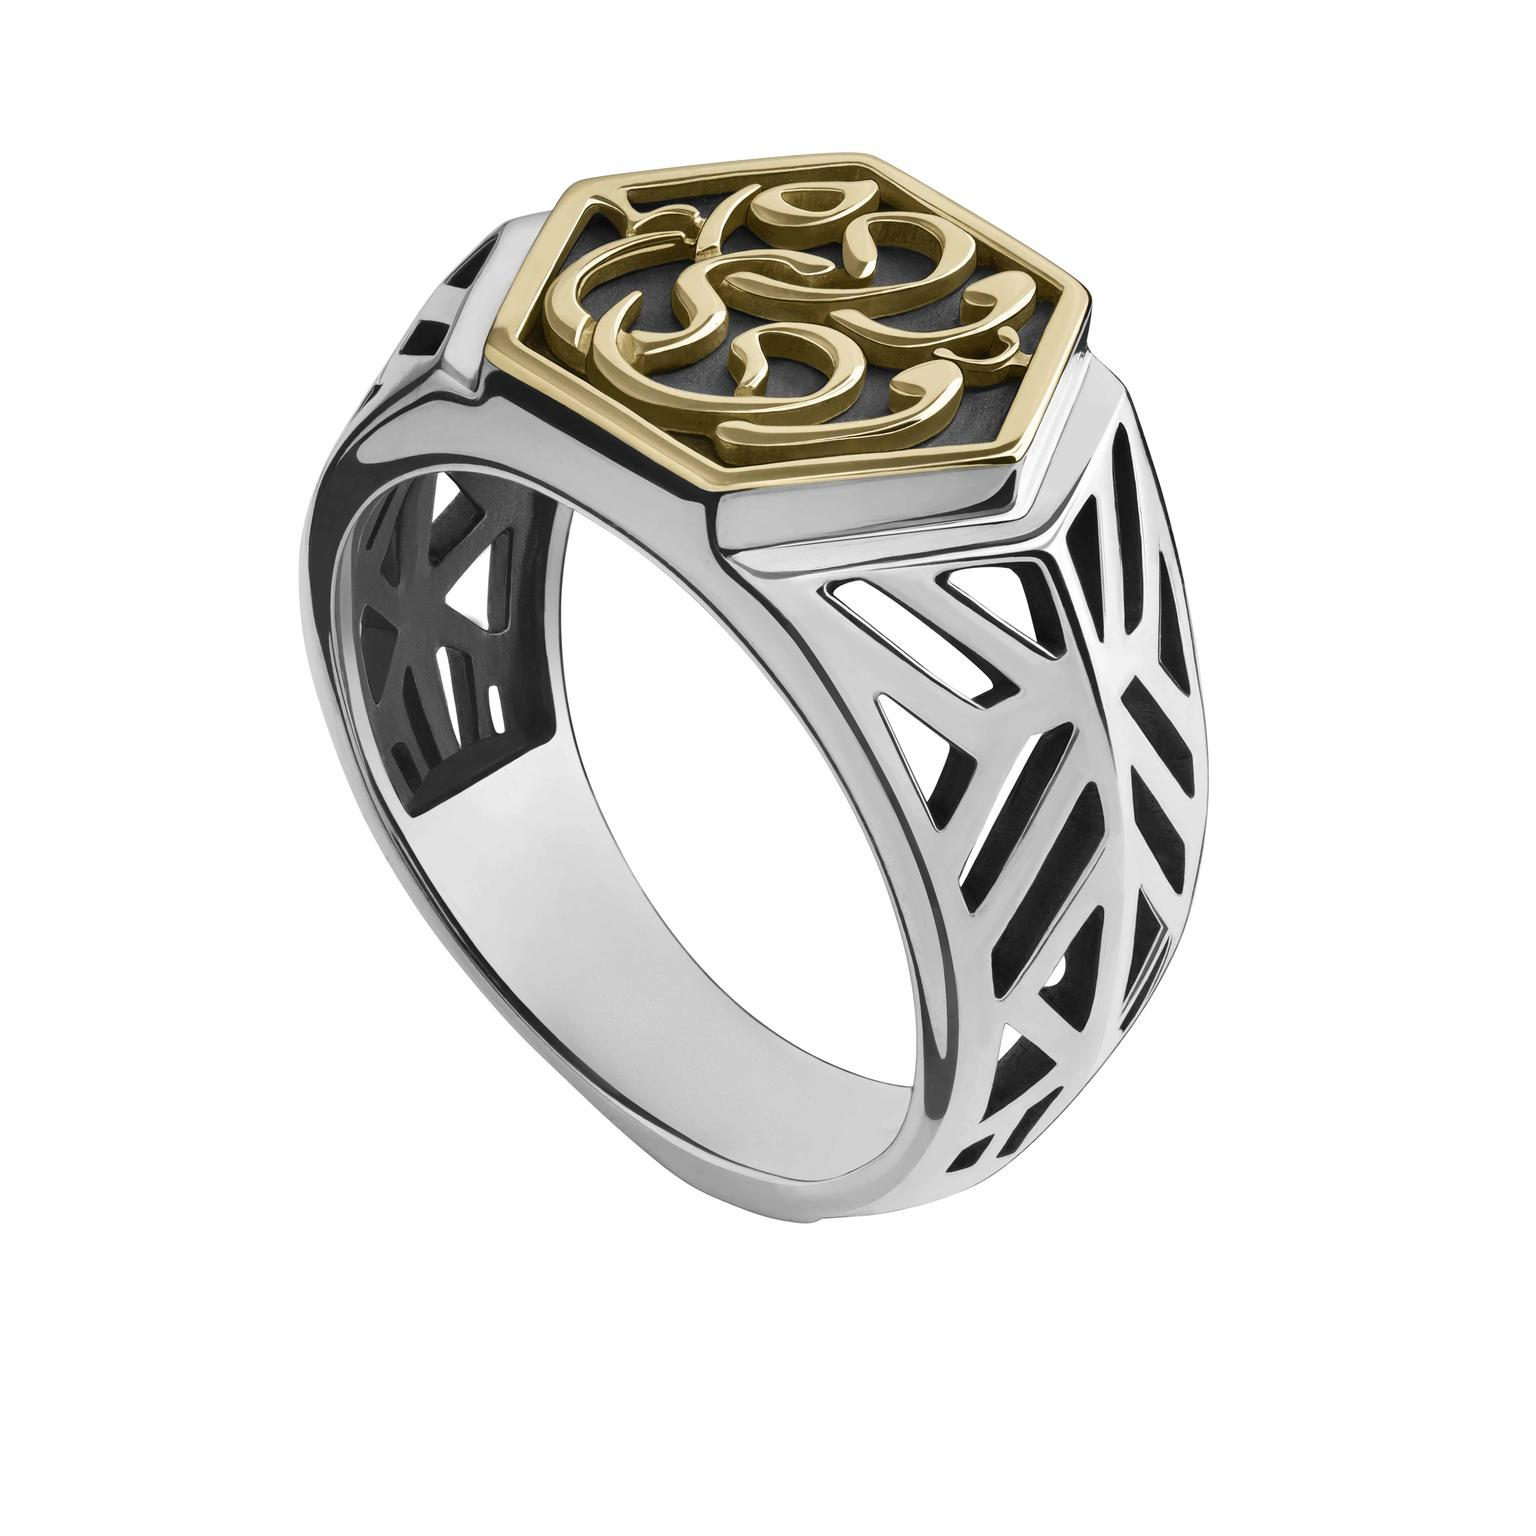 Mamluk ring from Azza Fahmy